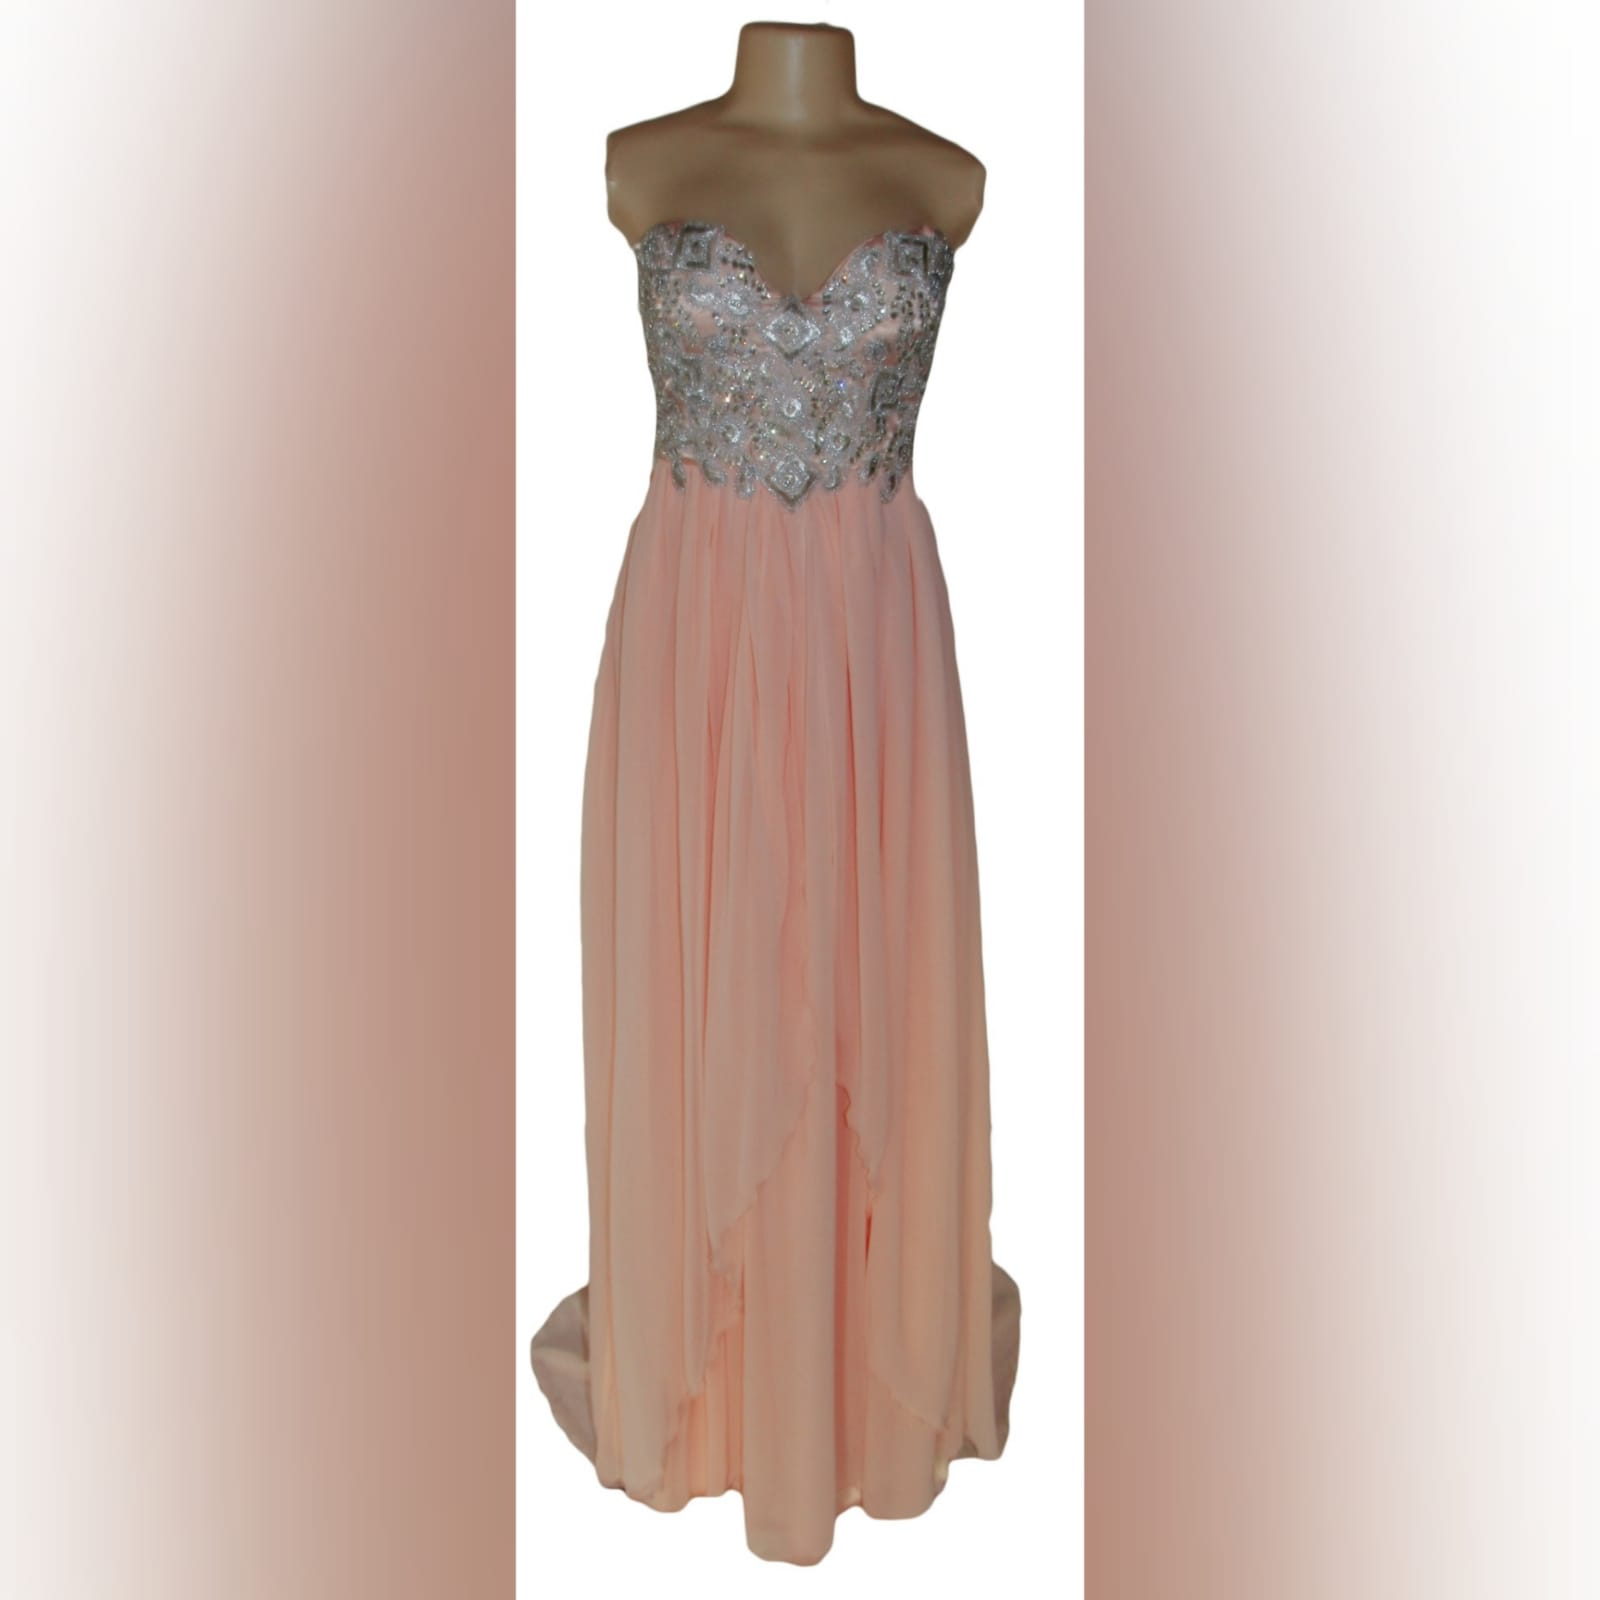 Peach and silver fun prom dress 4 peach and silver fun prom dress. Bodice detailed with appliques and beads, with a lace-up back. Bottom with gathered chiffon and an overlayer opened in front.